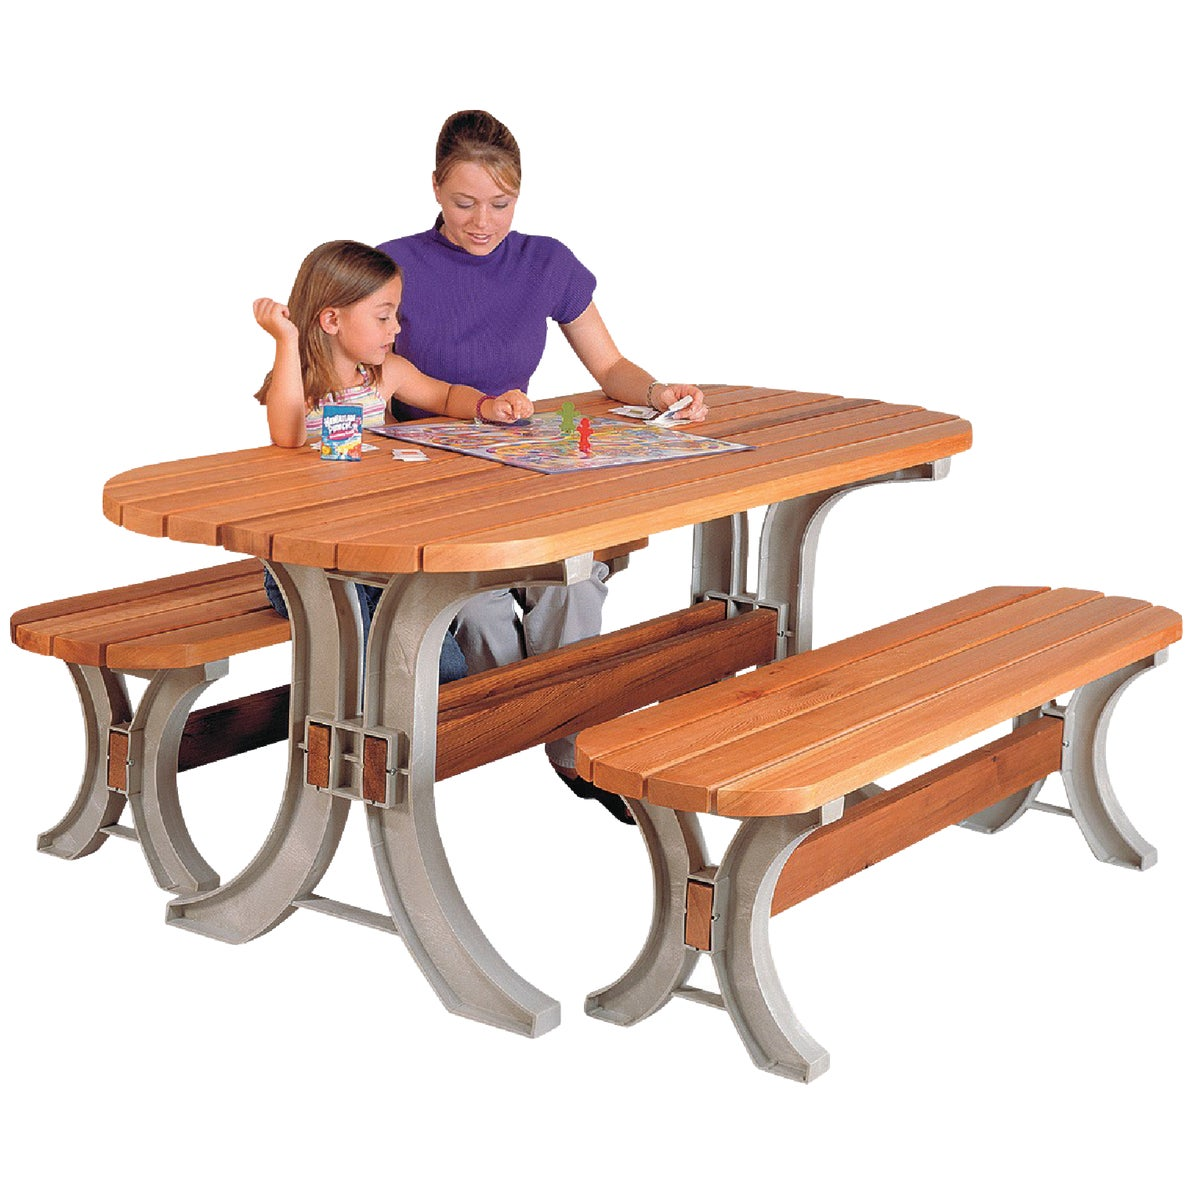 SAND PICNIC TABLE KIT